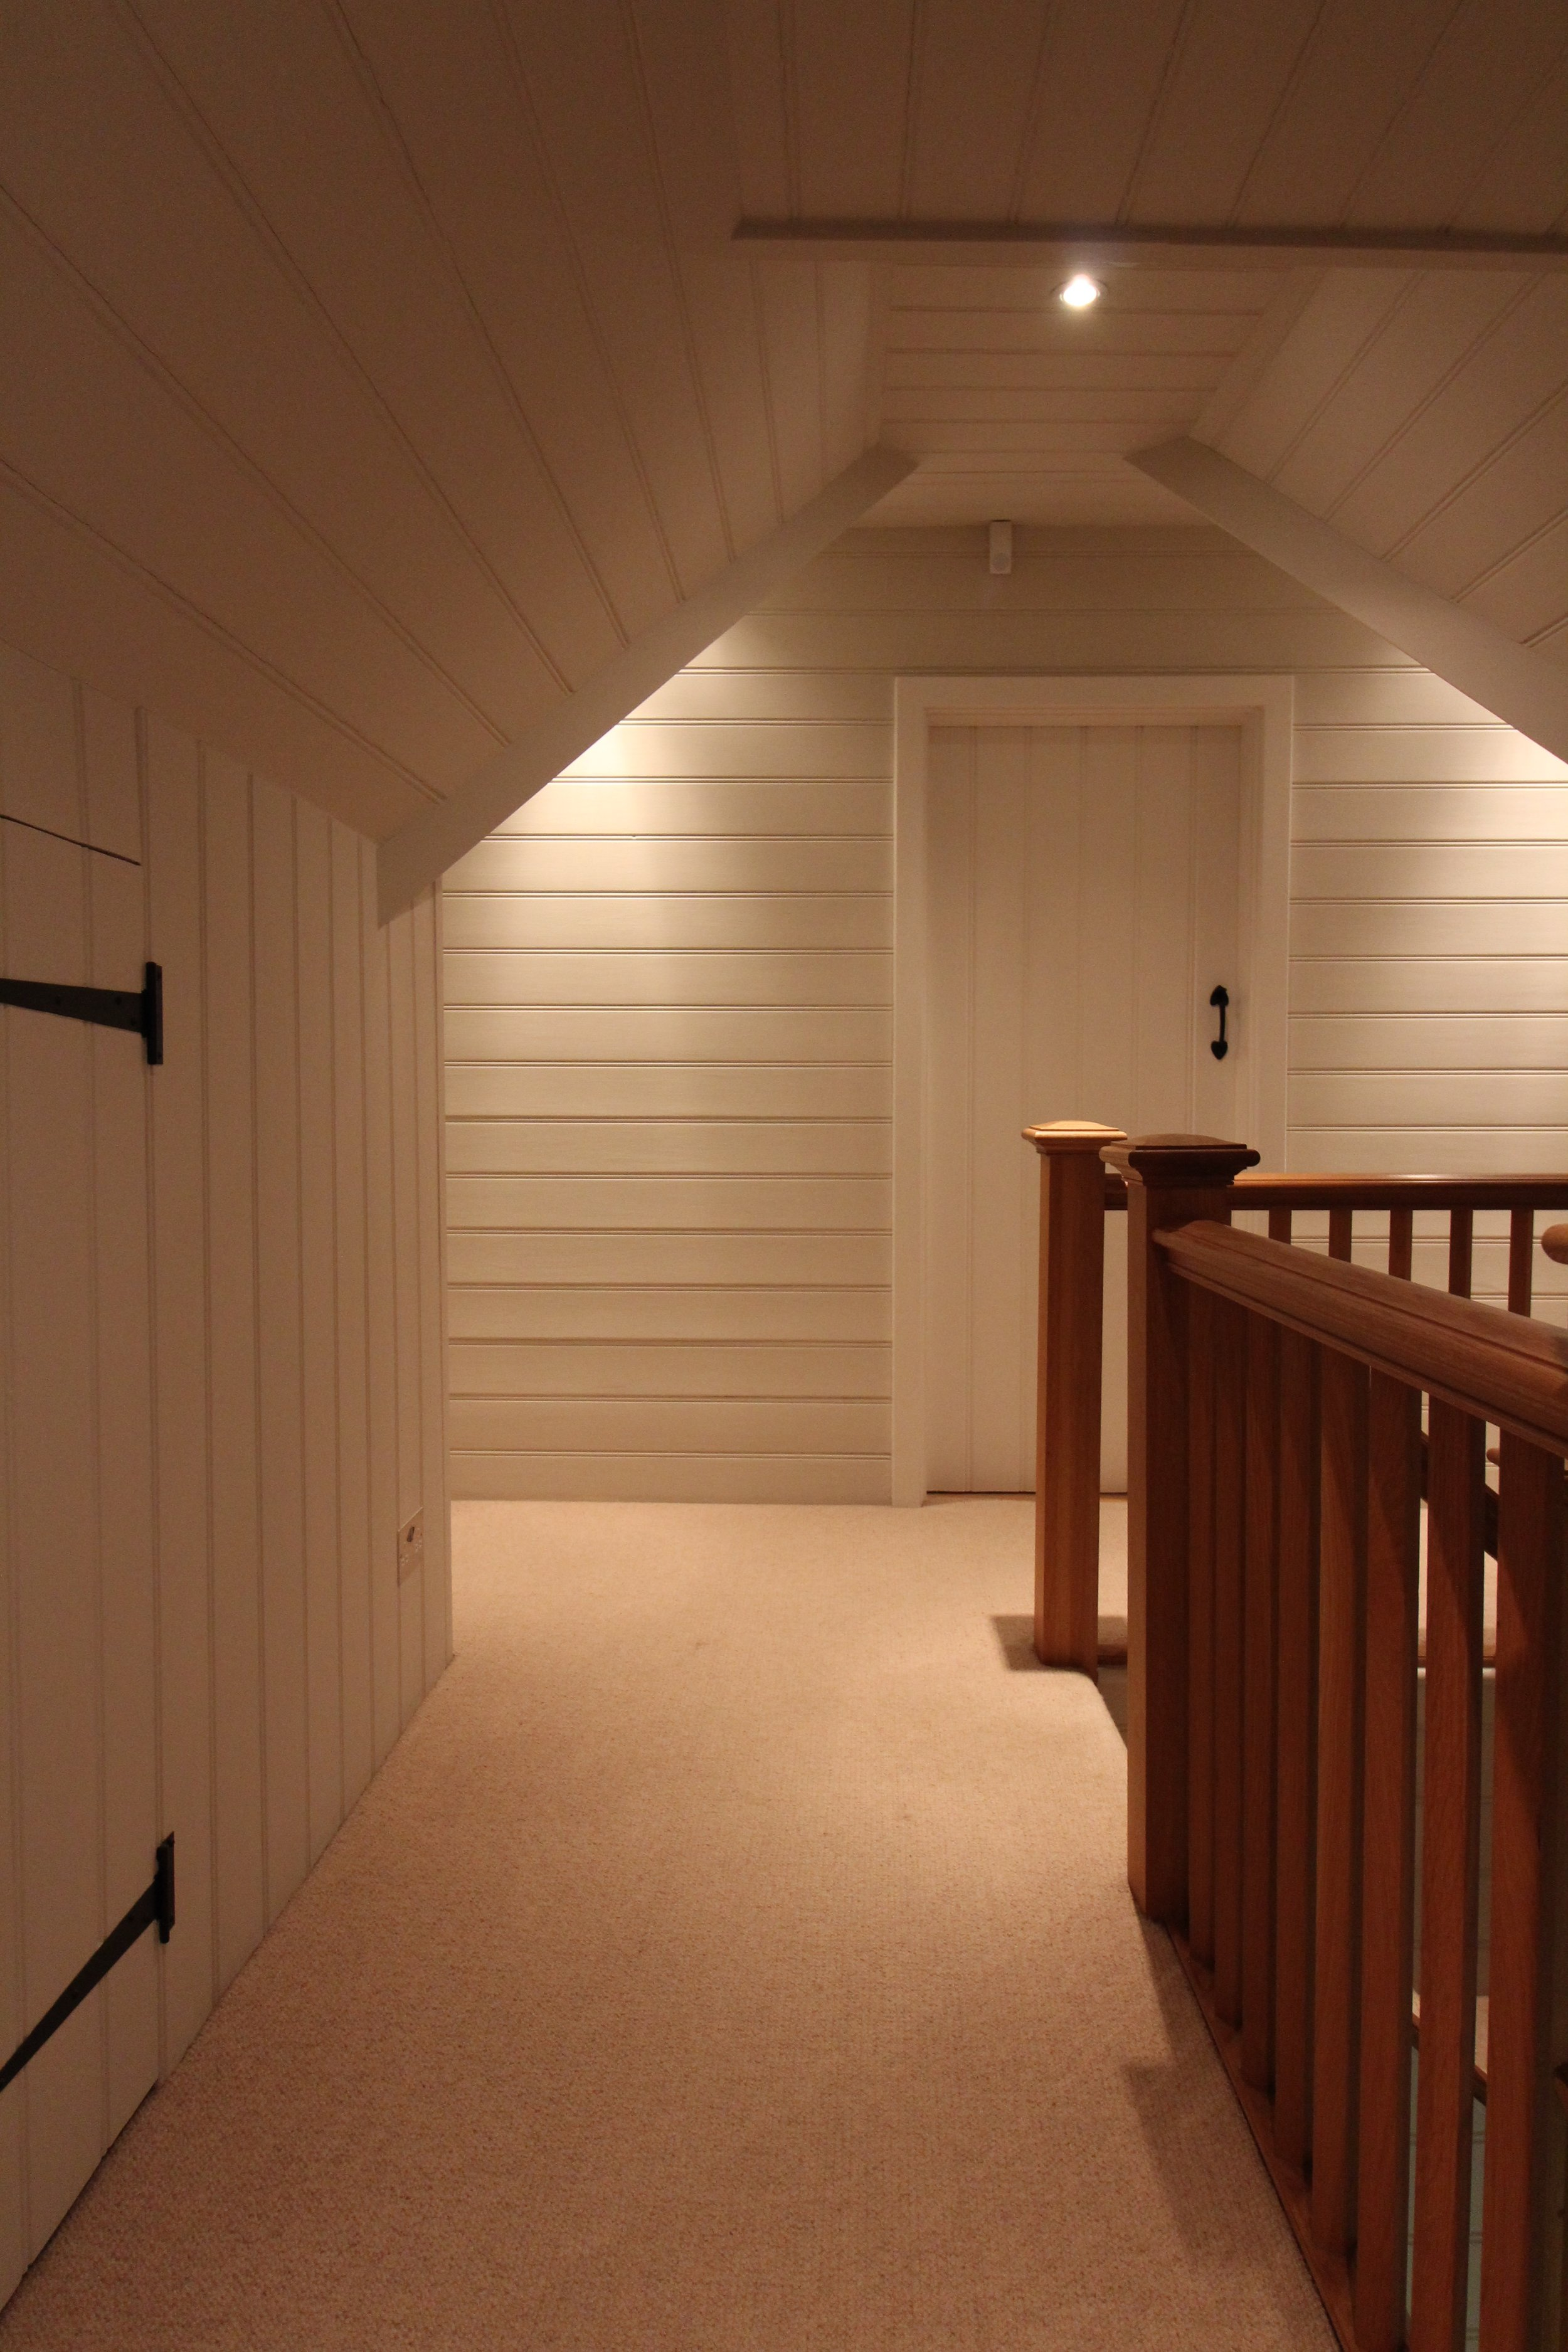 Tongue and groove wall panelling, carefully repaired and decorated in Farrow and Ball paint.